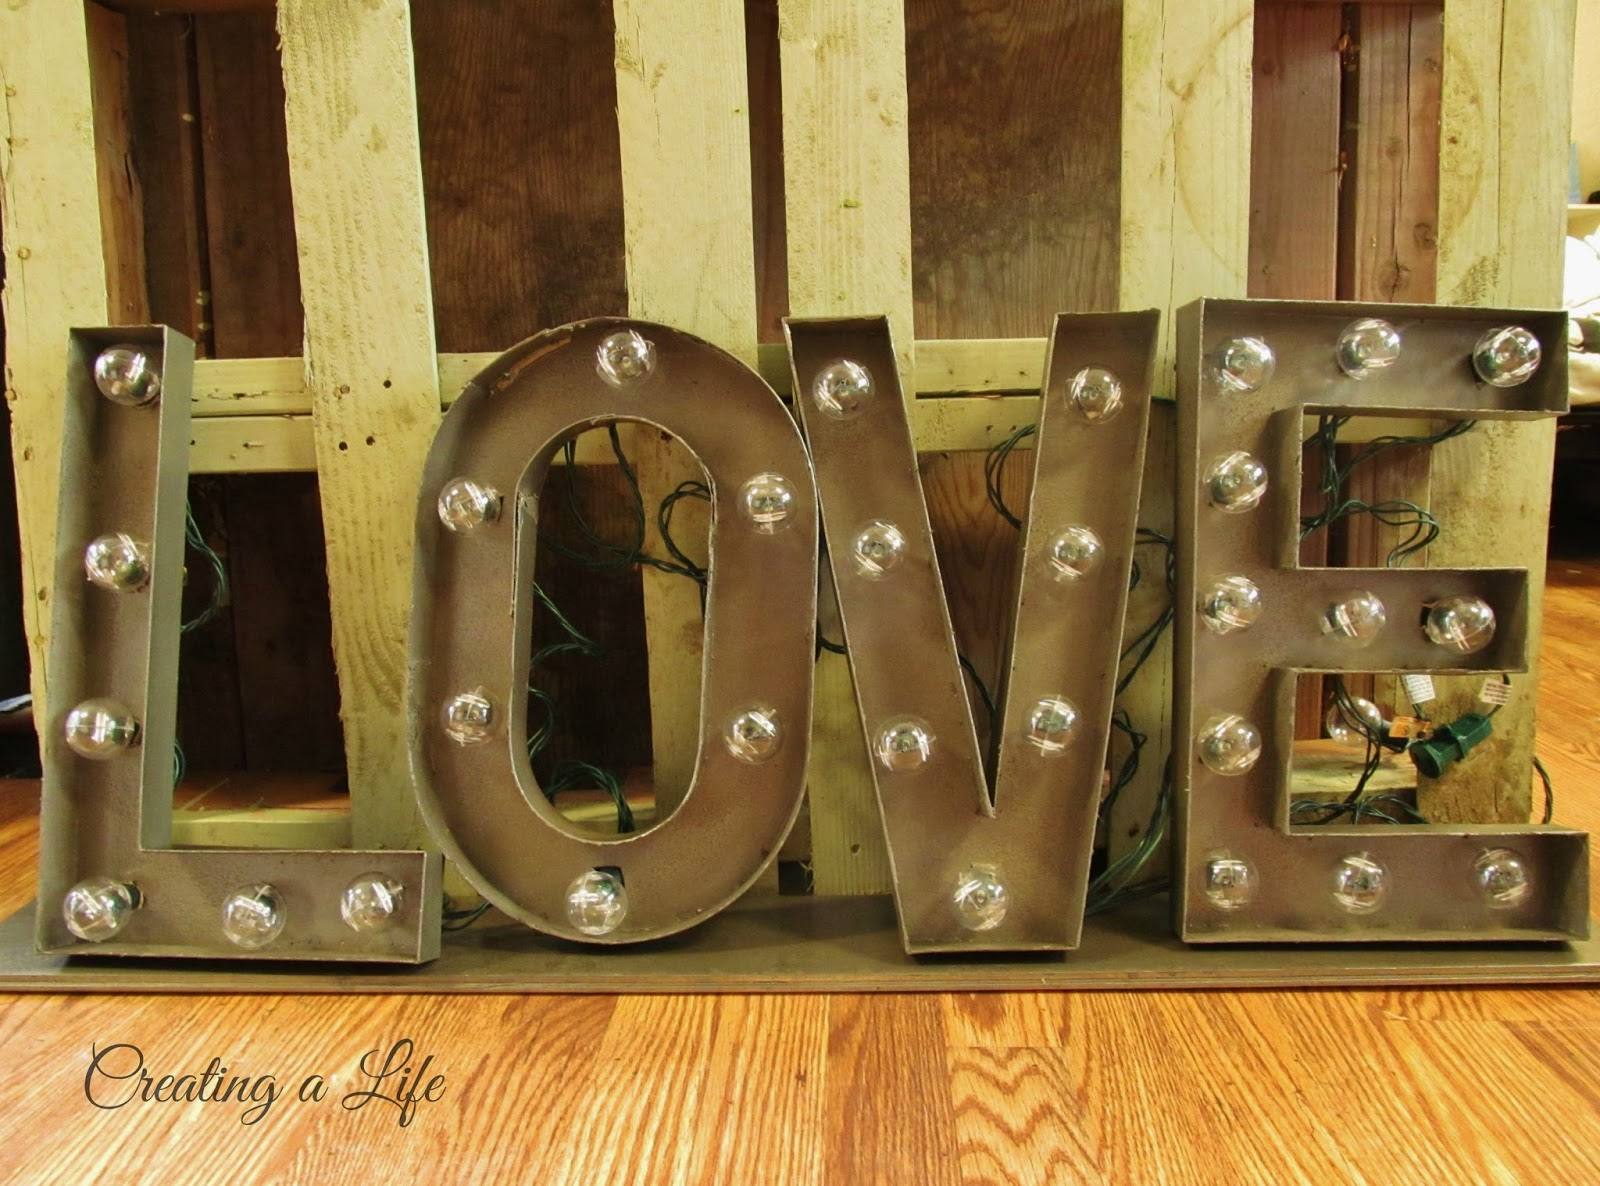 Lighted Metal Initials Lighted Metal Initials  Wall Plate Design Ideas